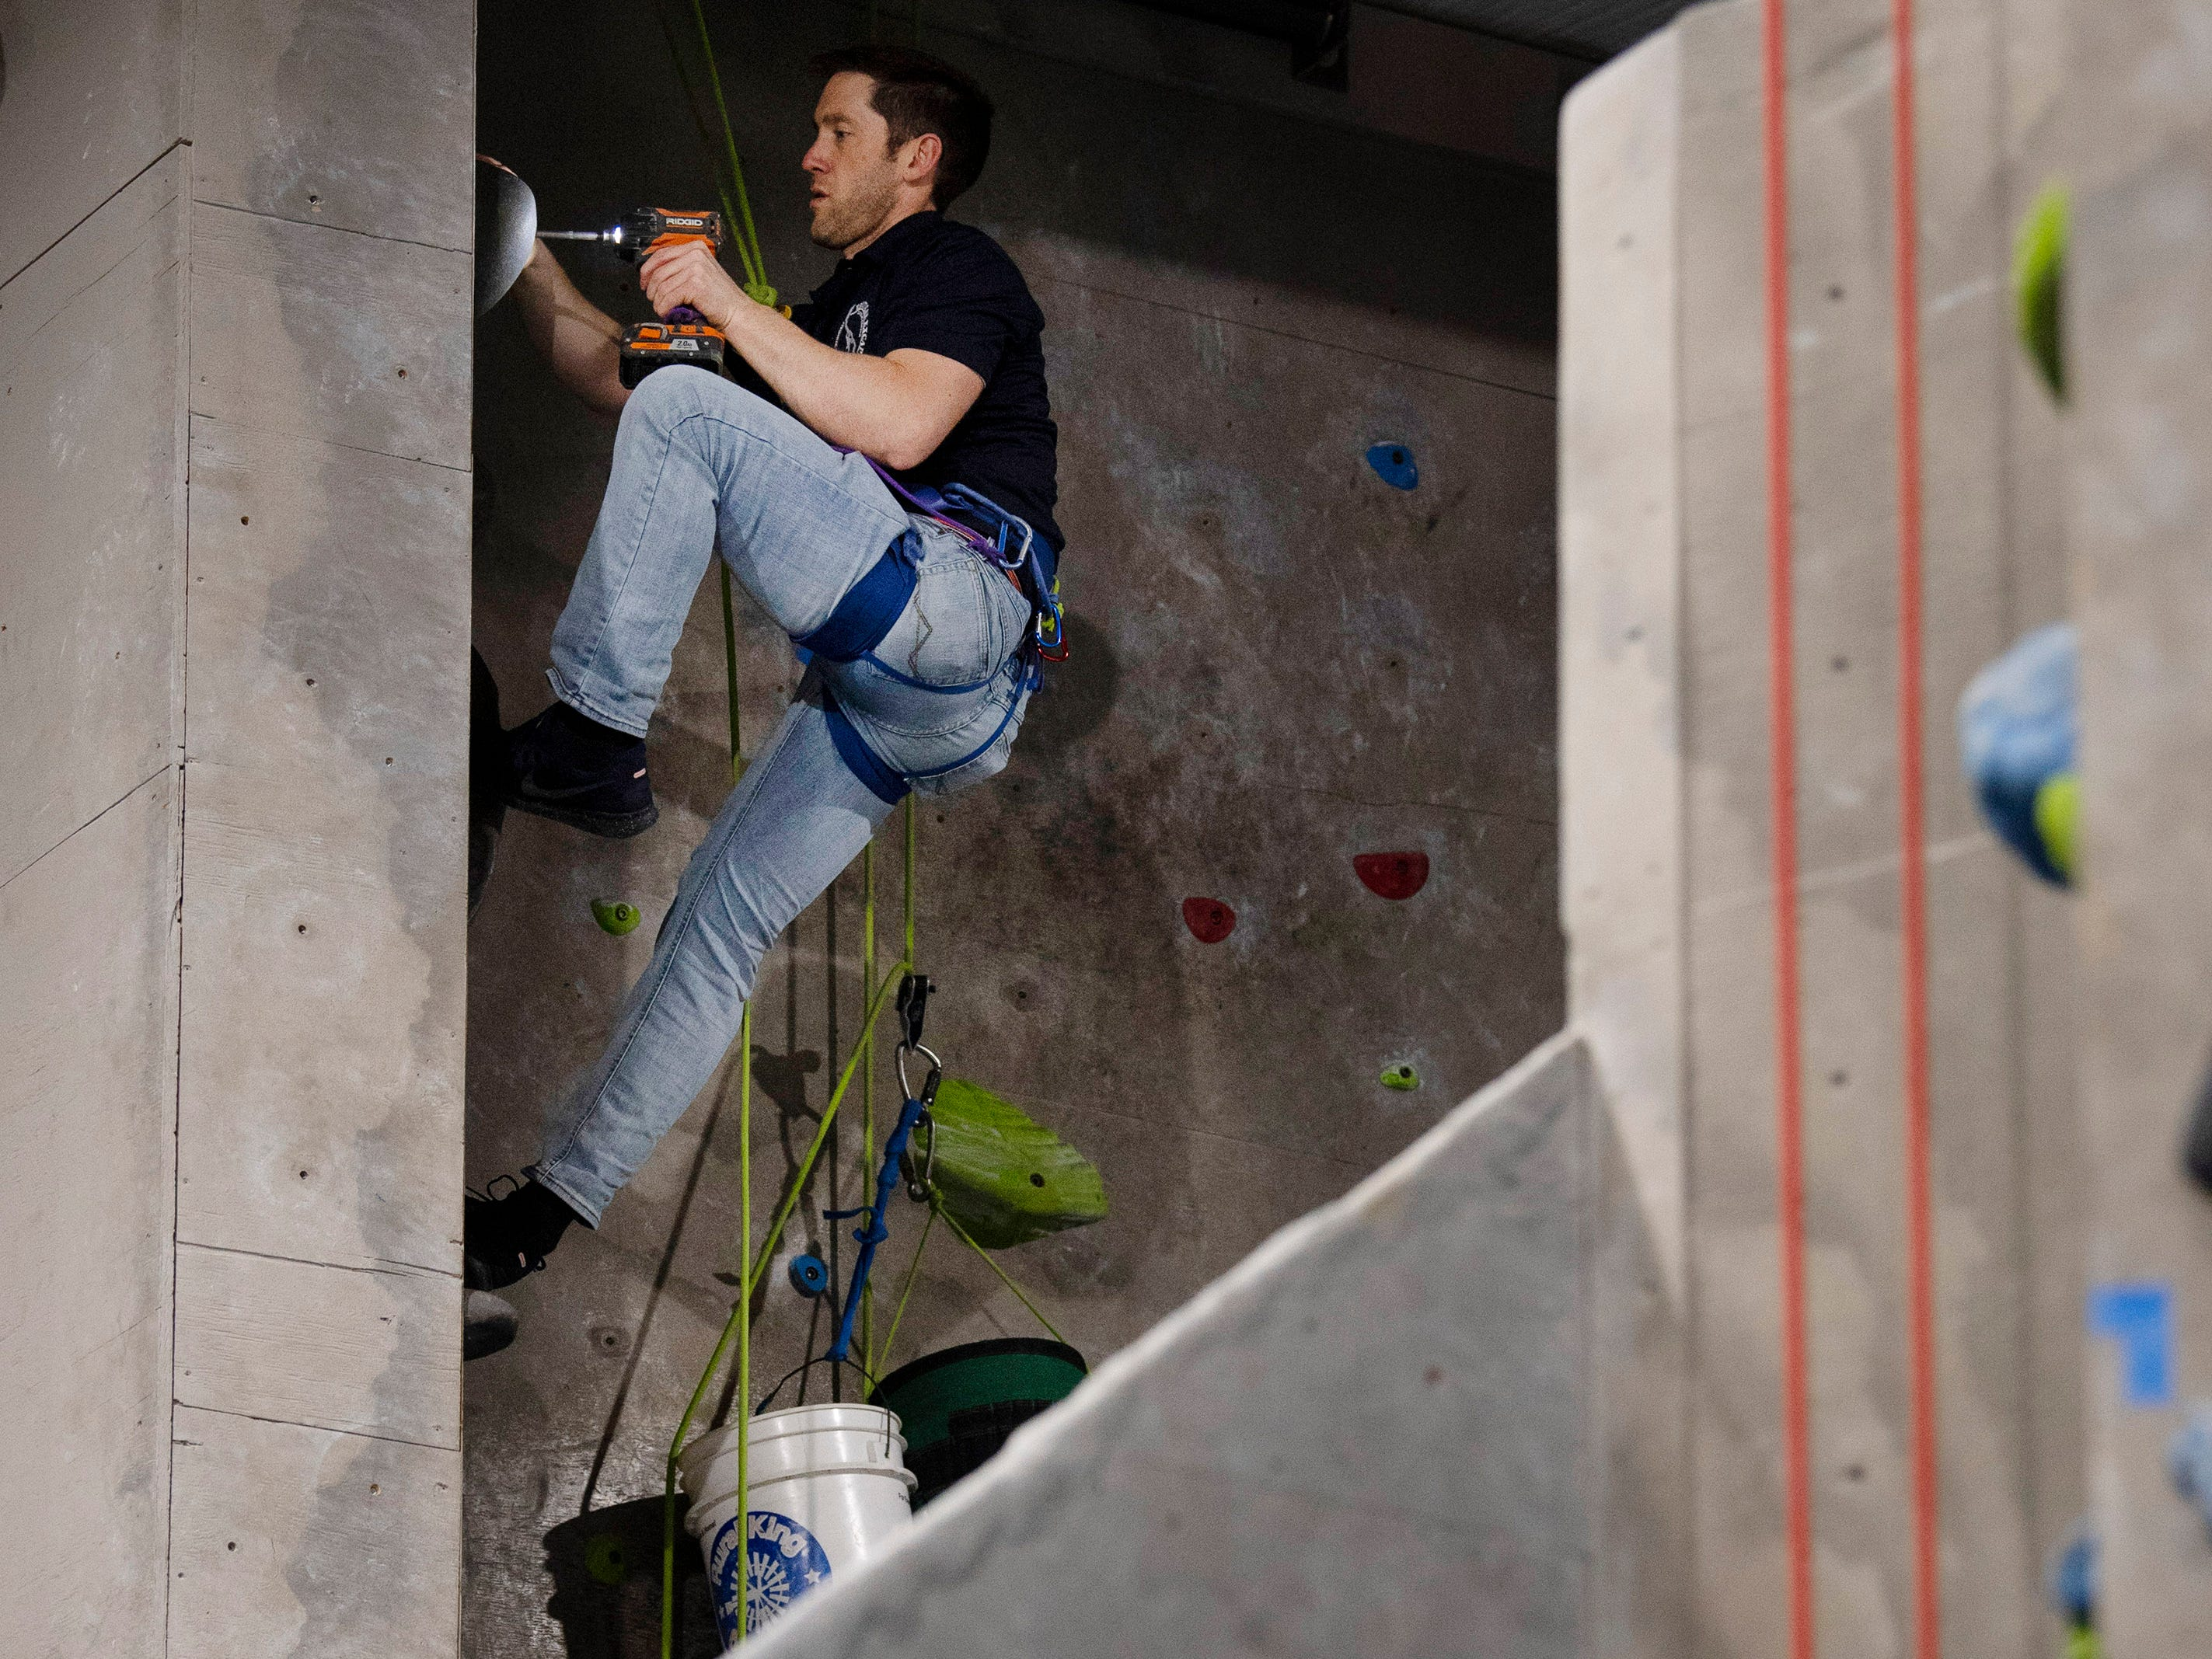 Brian Kennedy, director of operations, moves climbing holds at Vertical eXcape at 1315 N. Royal Avenue in Evansville Friday evening. The color-coded hand and foot holds are regularly modified to keep the experience fresh for climbers.